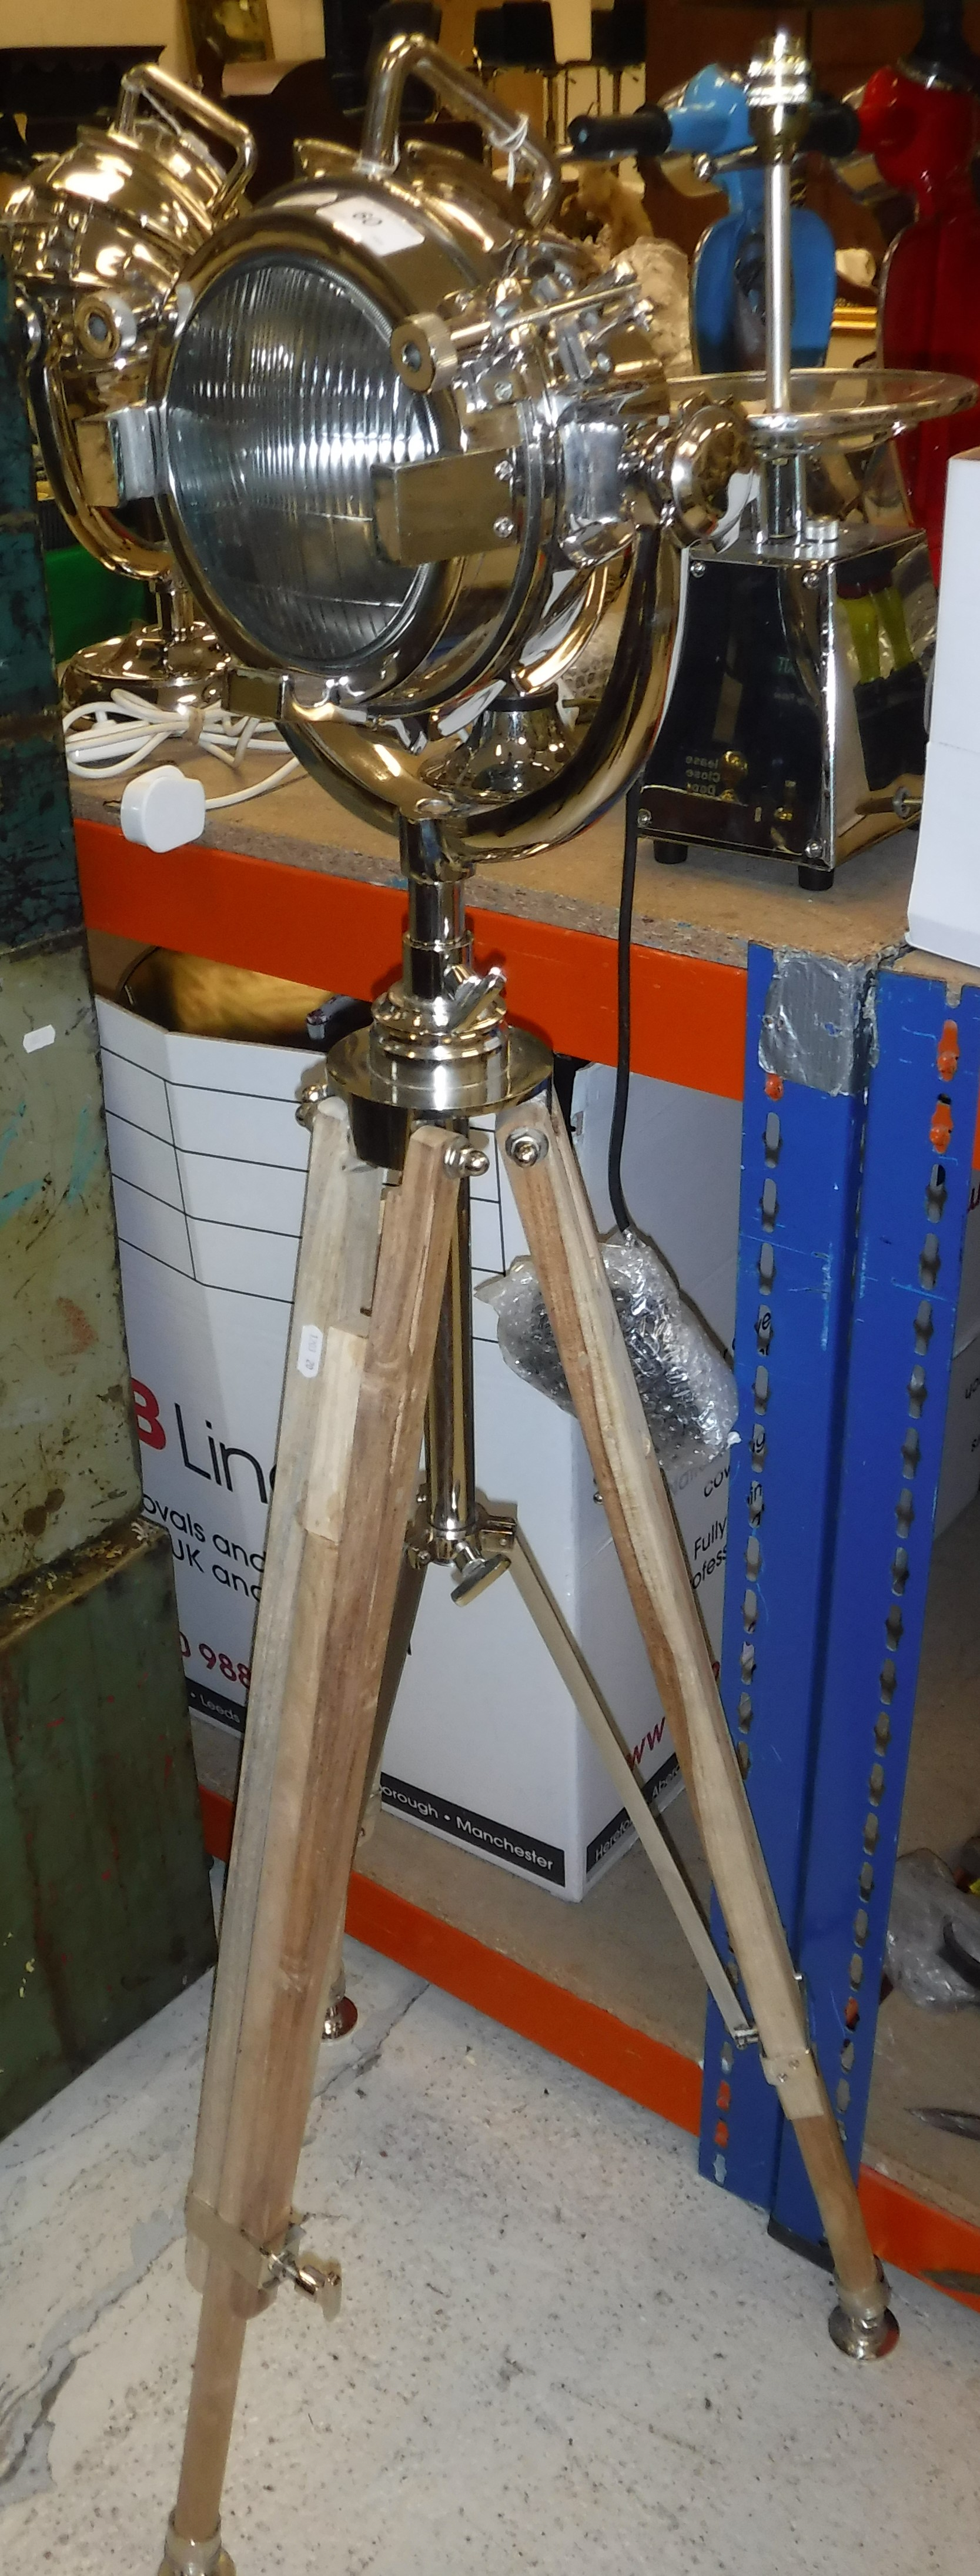 Lot 60 - A polished metal search light type lamp on an adjustable tripod base.